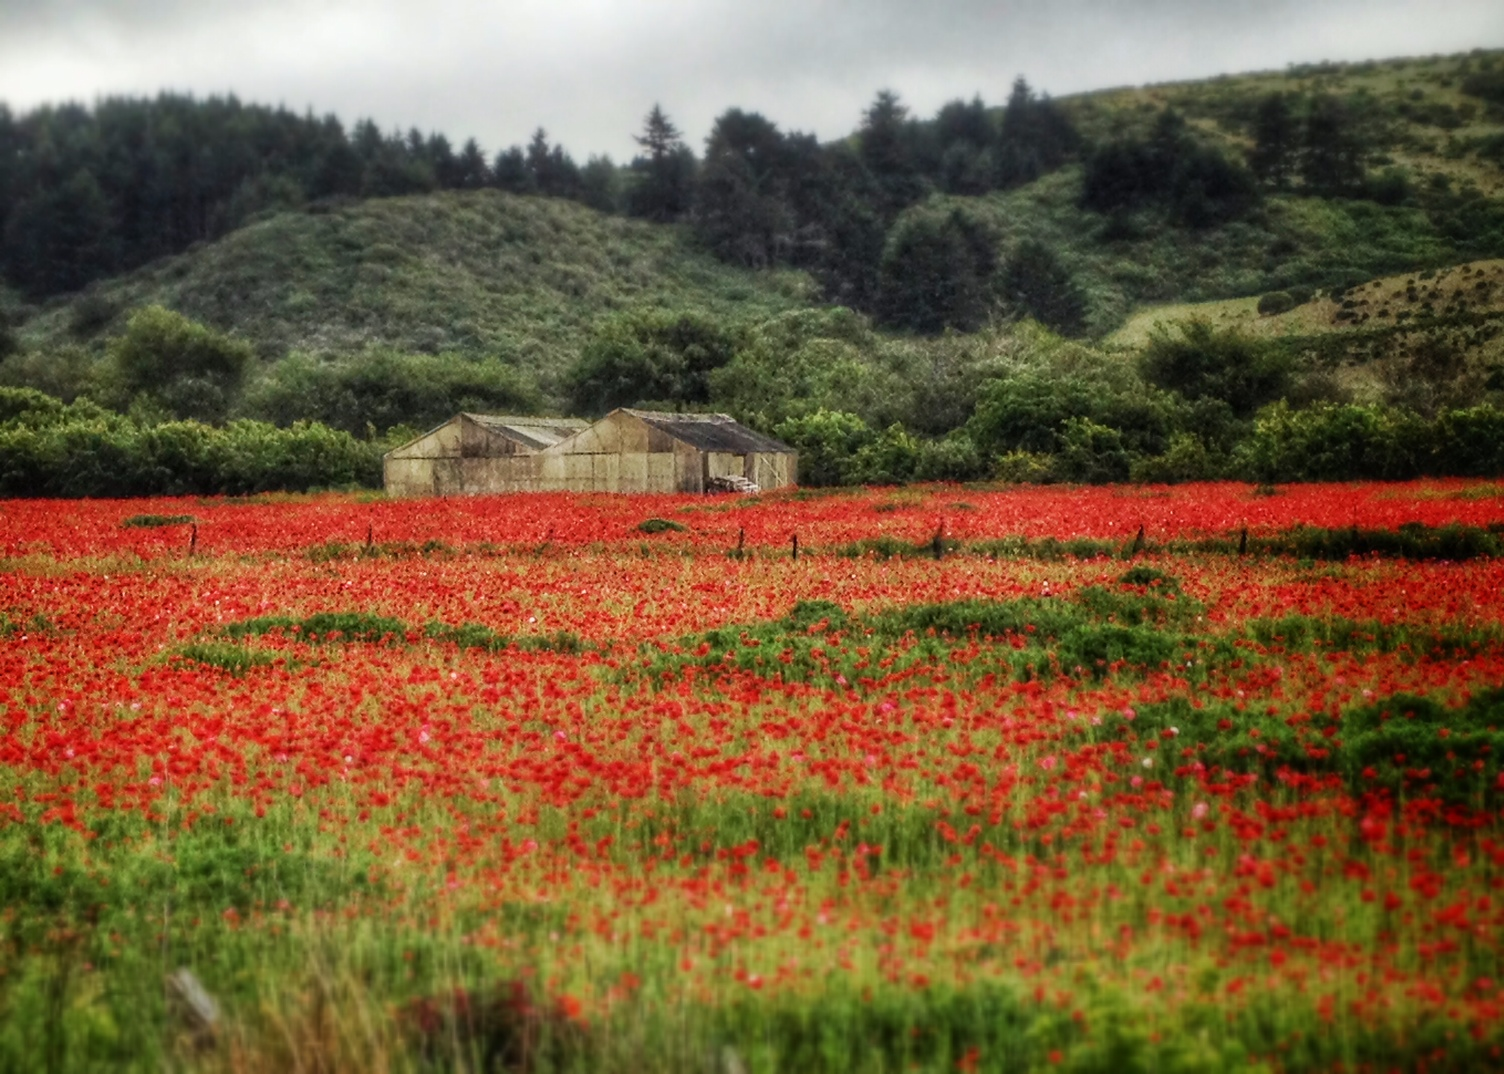 Poppies in California